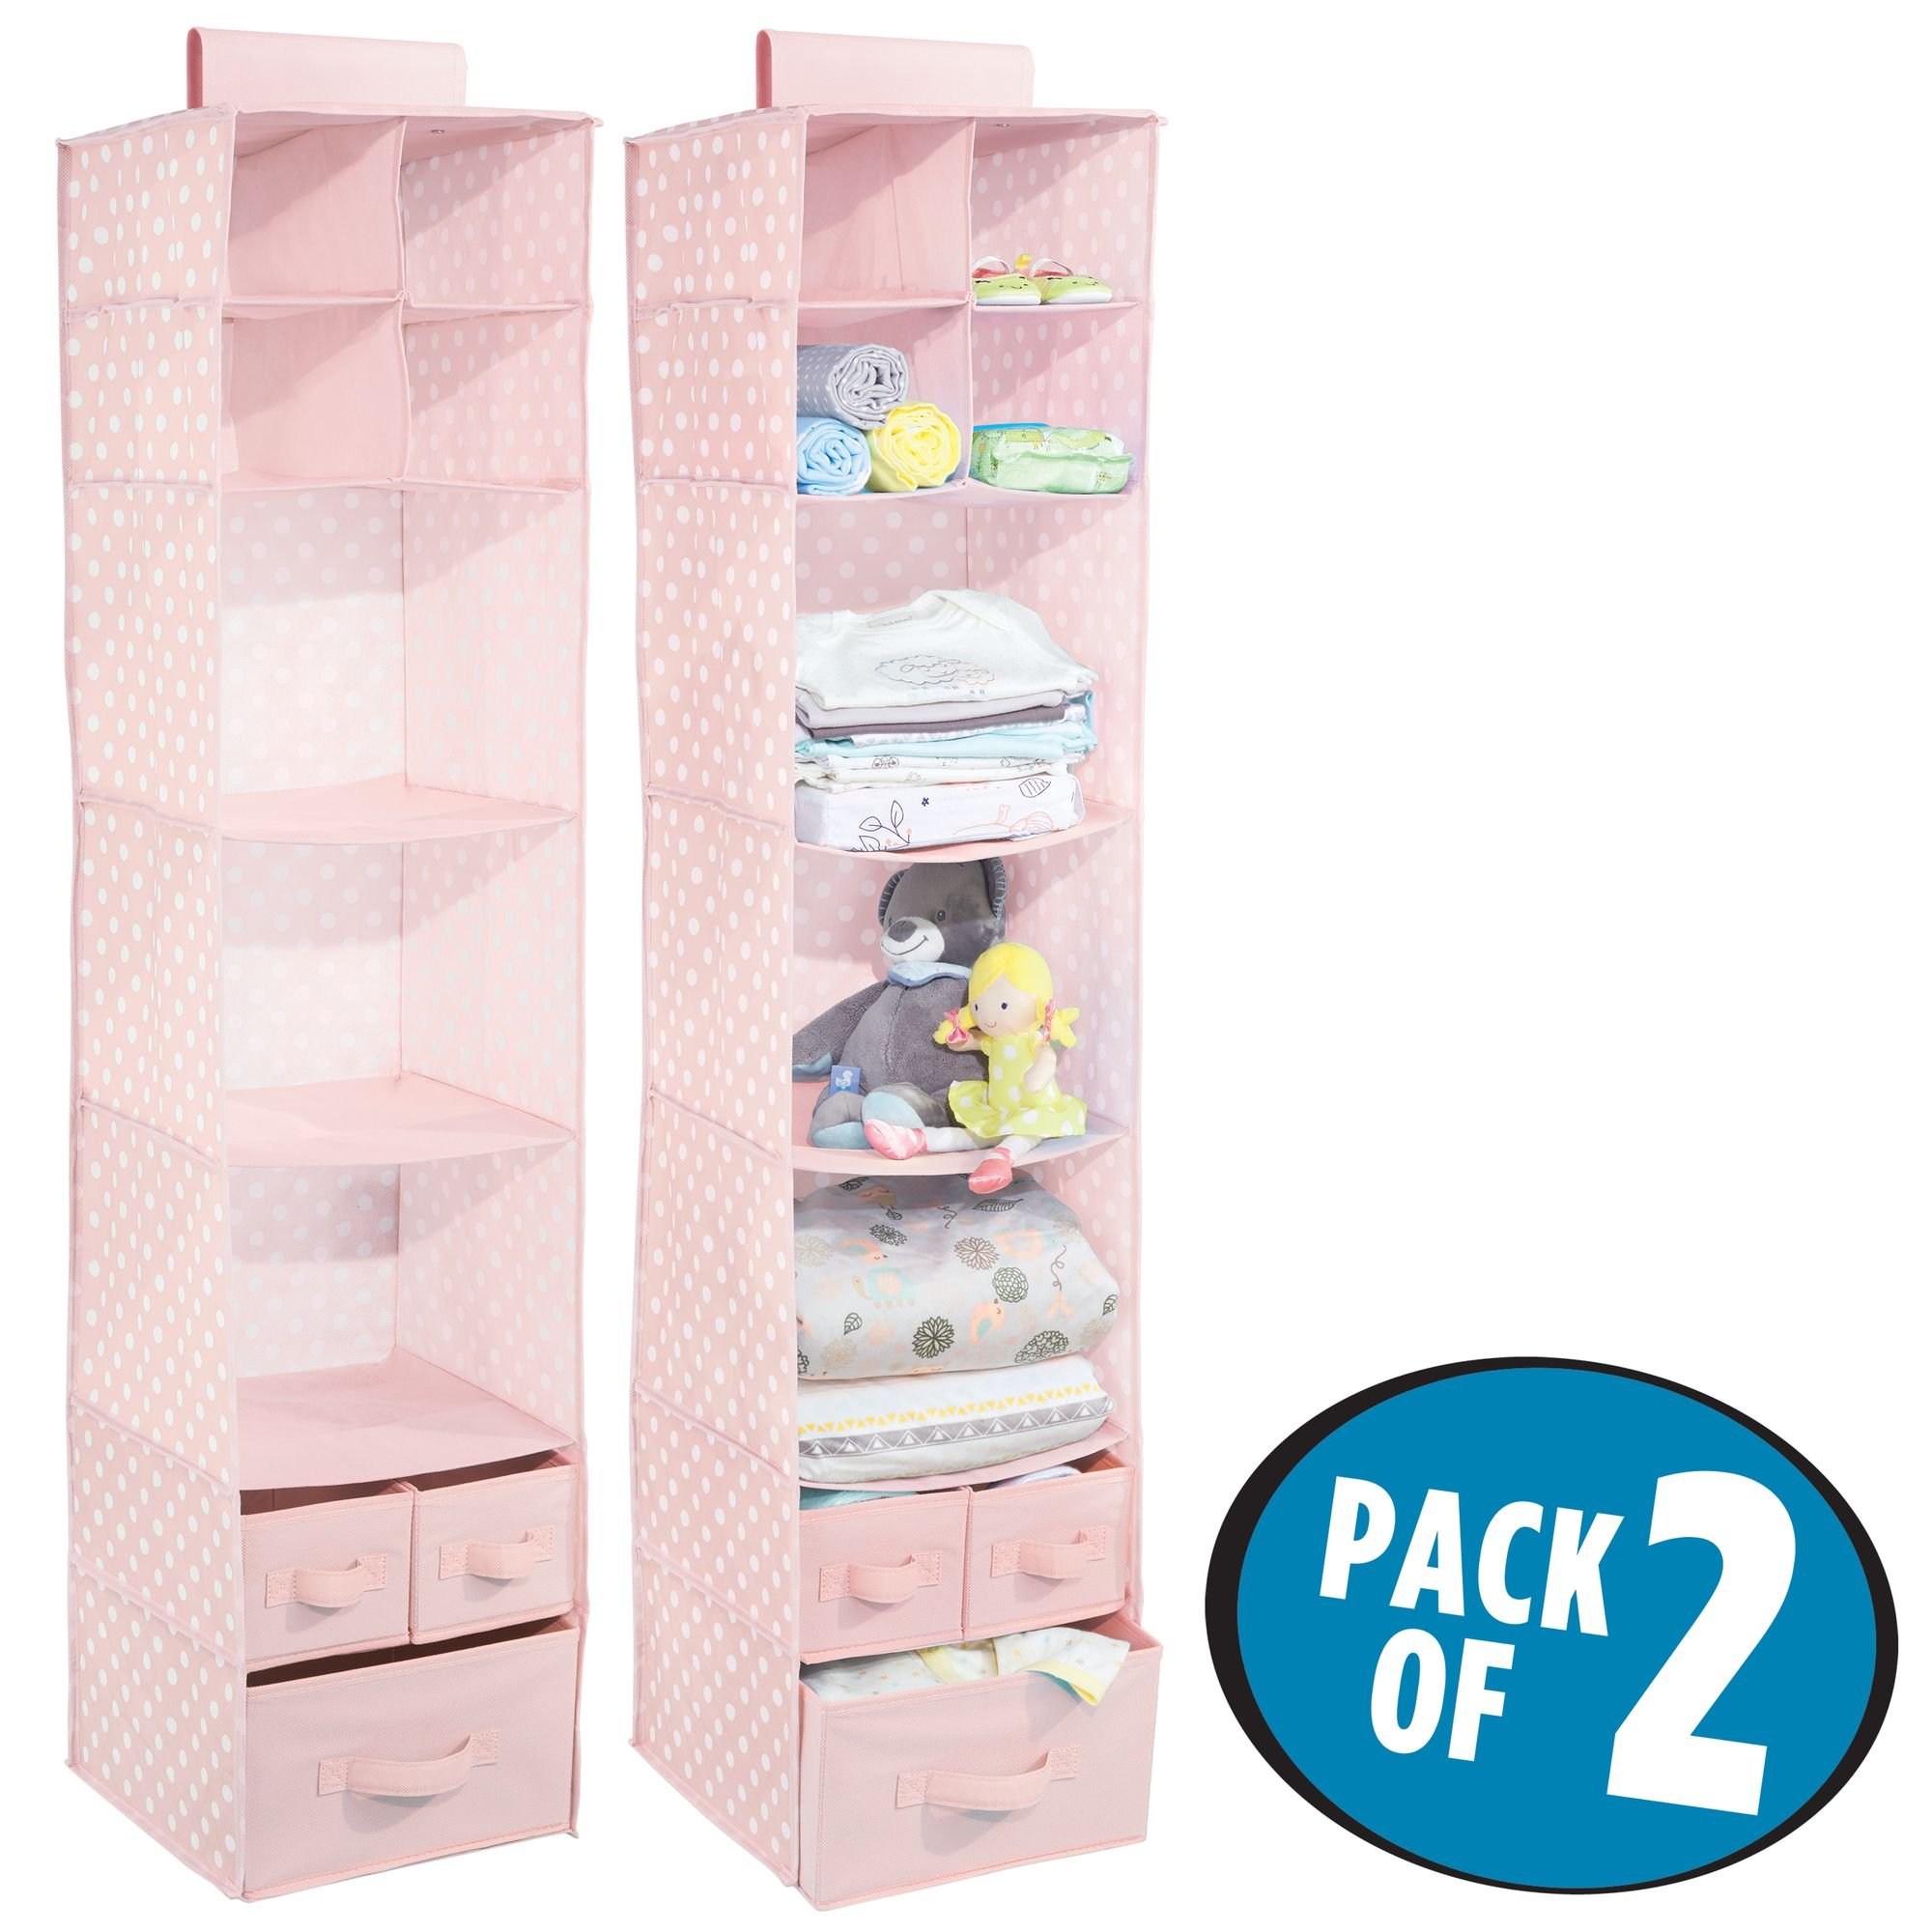 mDesign Soft Fabric Over Closet Rod Hanging Storage Organizer with 7 Shelves and 3 Removable Drawers for Child/Baby Room or Nursery - Pack of 2, Polka Dot Pattern, Pink with White Dots